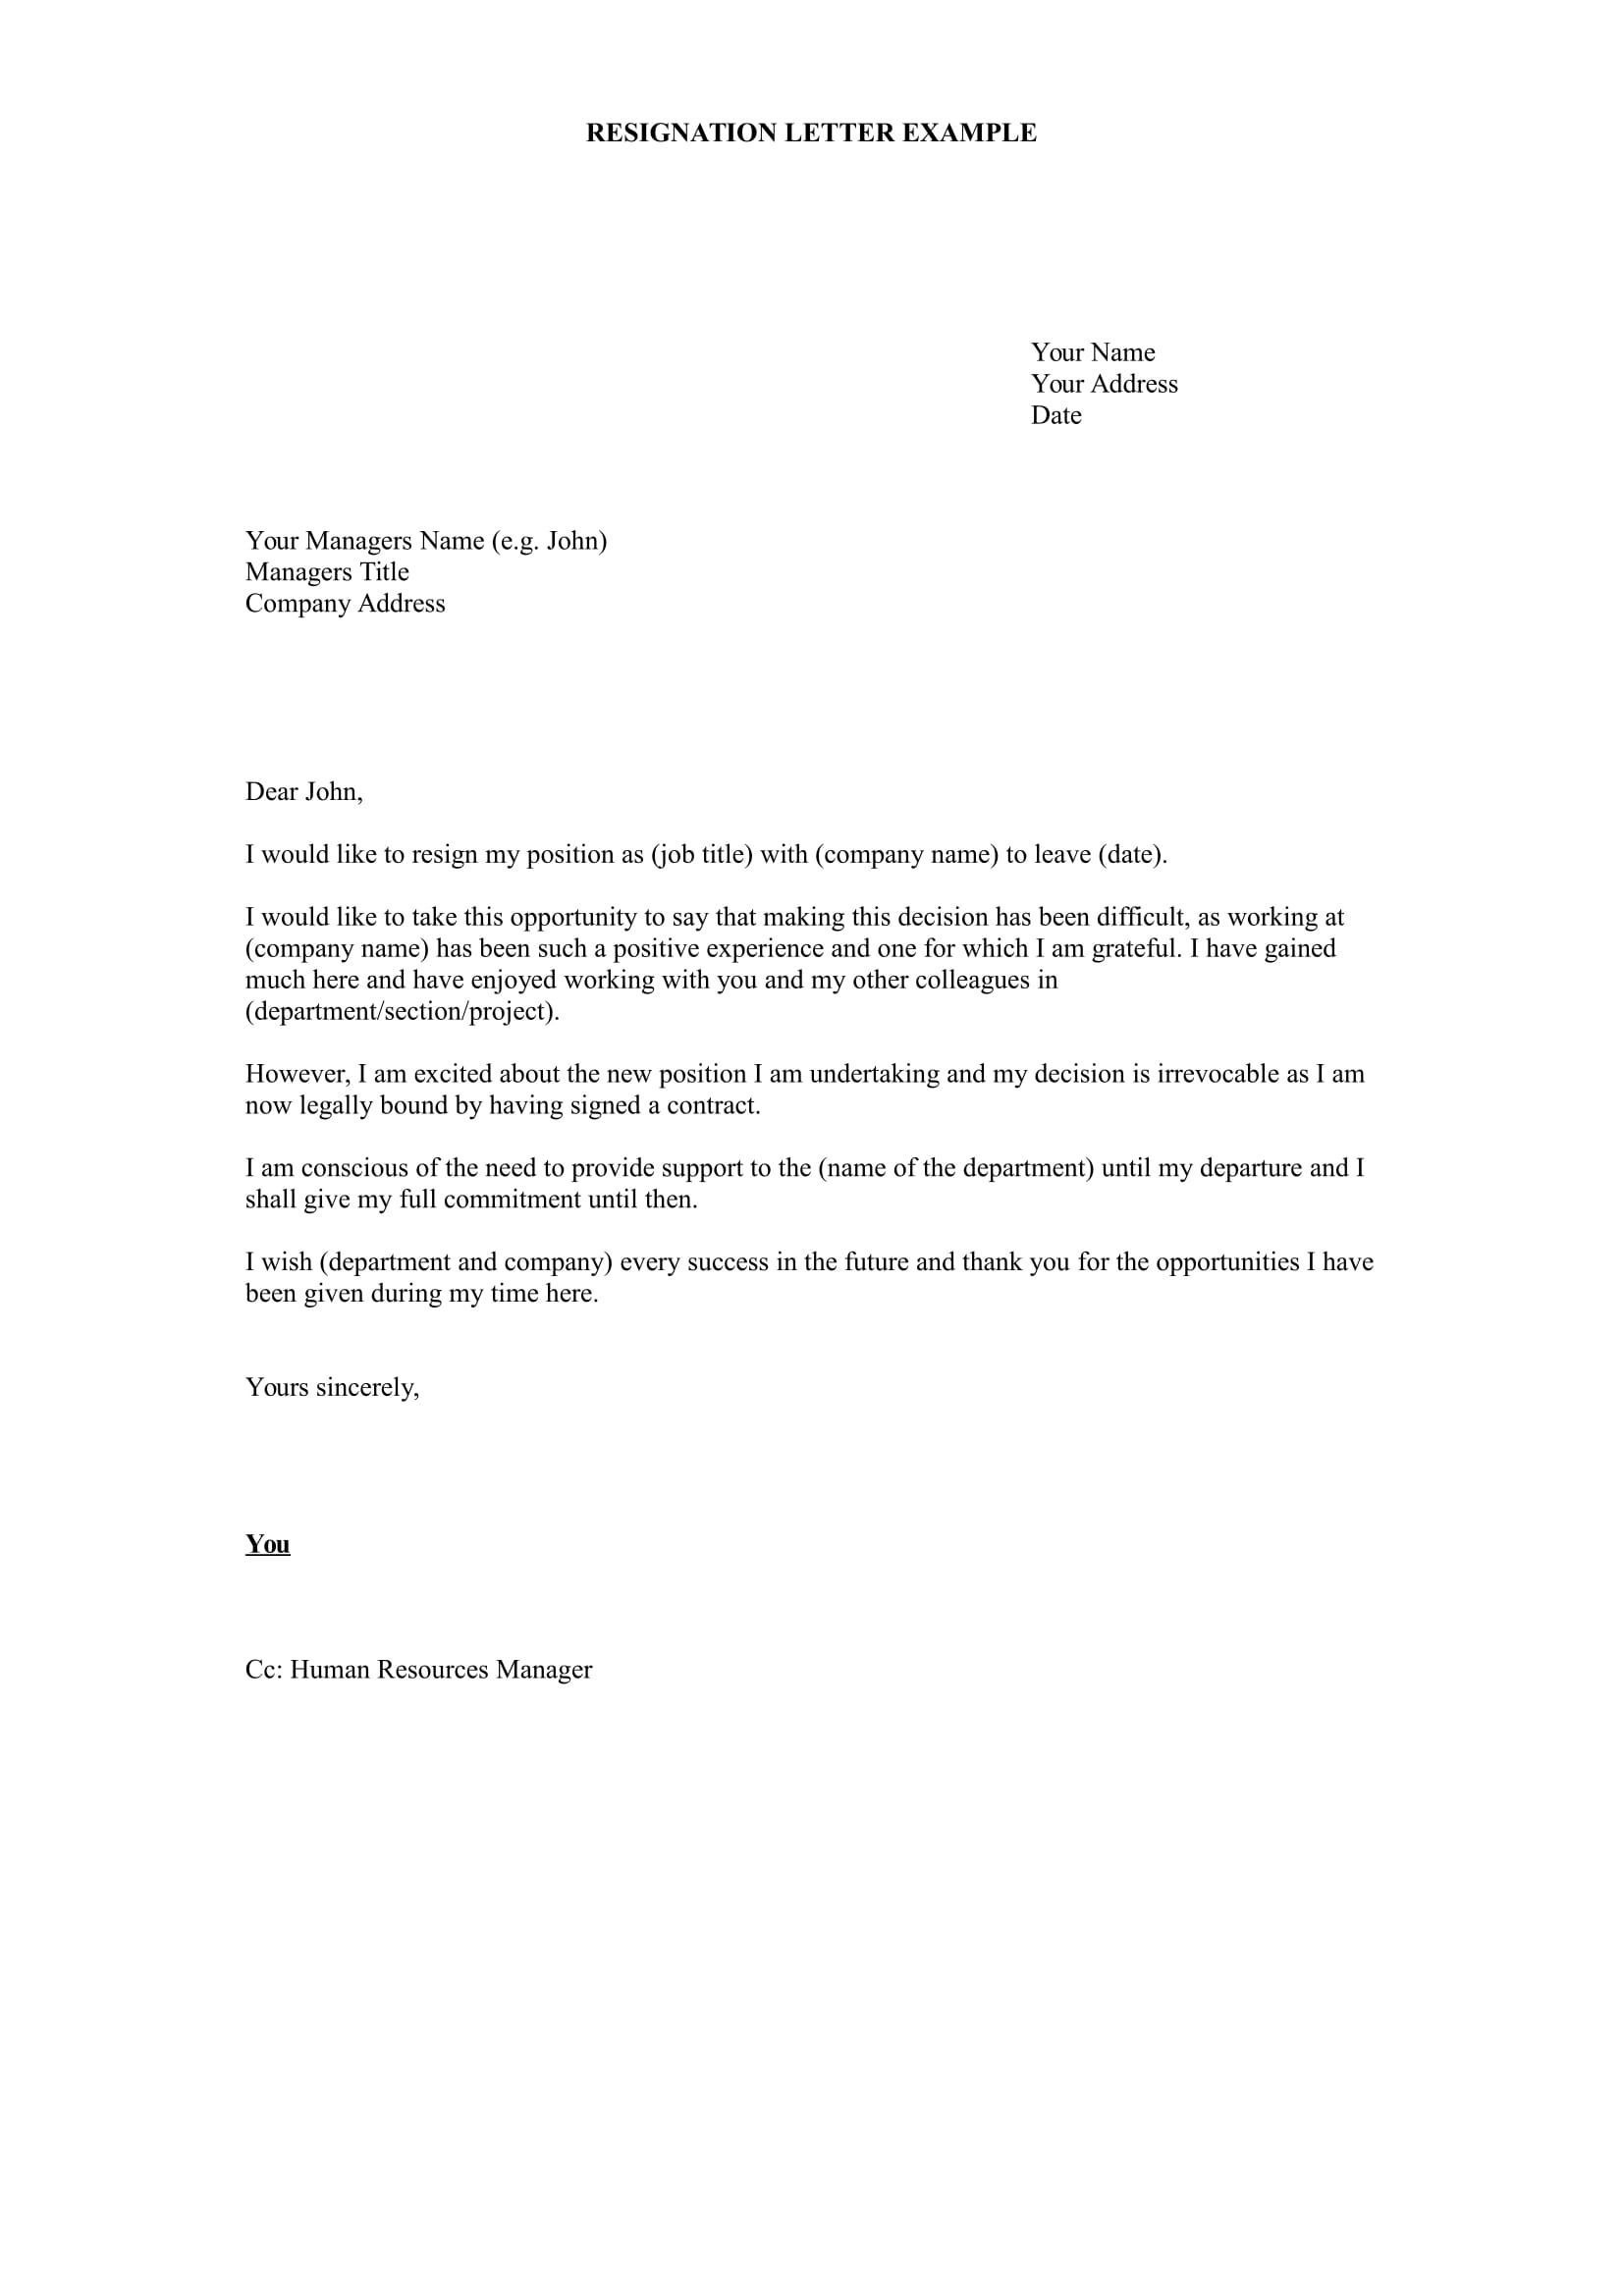 001 Unusual Resignation Letter Sample Free Doc High Definition  .docFull